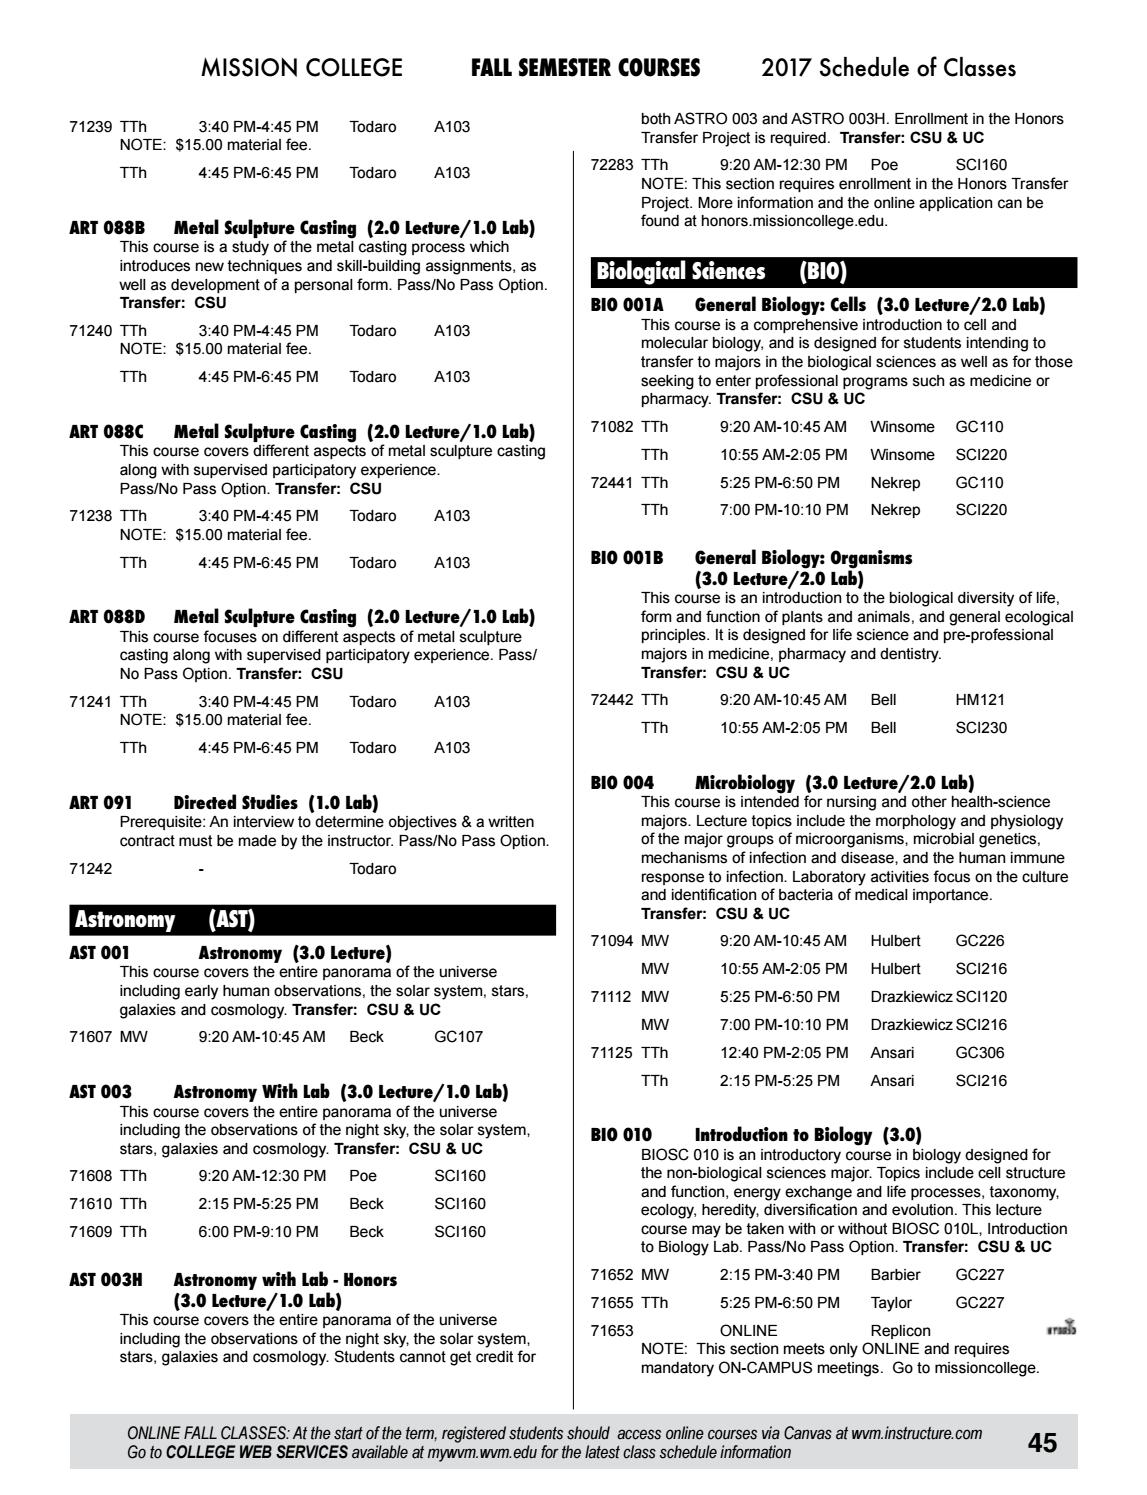 2017 mission college summer fall schedule by mission college issuu